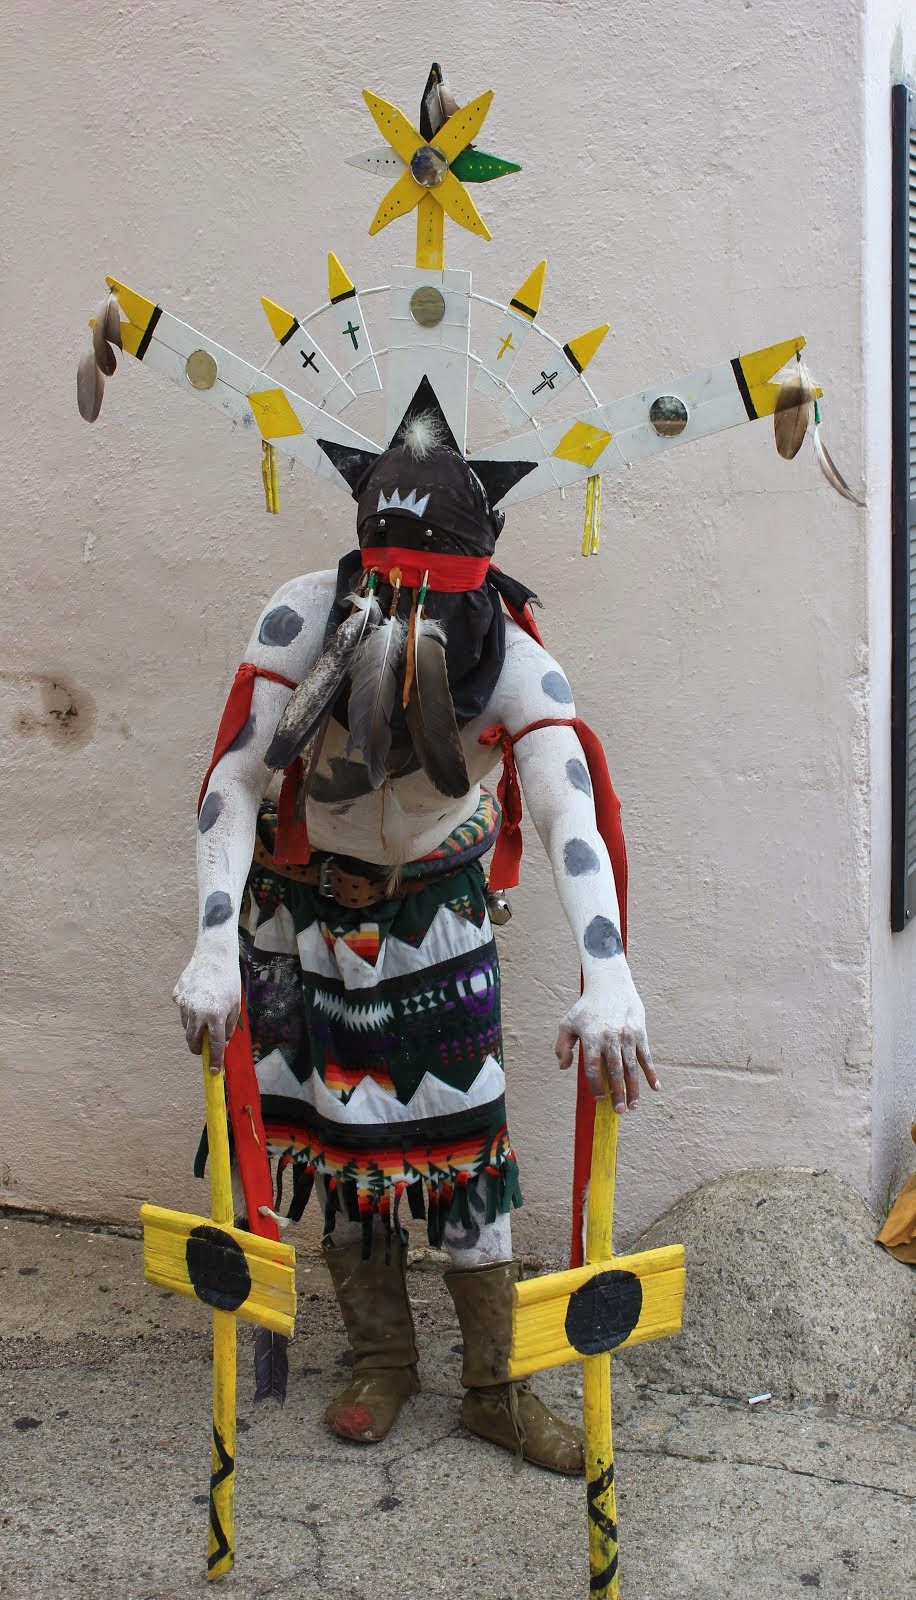 """Cha 'Bii' Tu Apache Crown Dancer"""